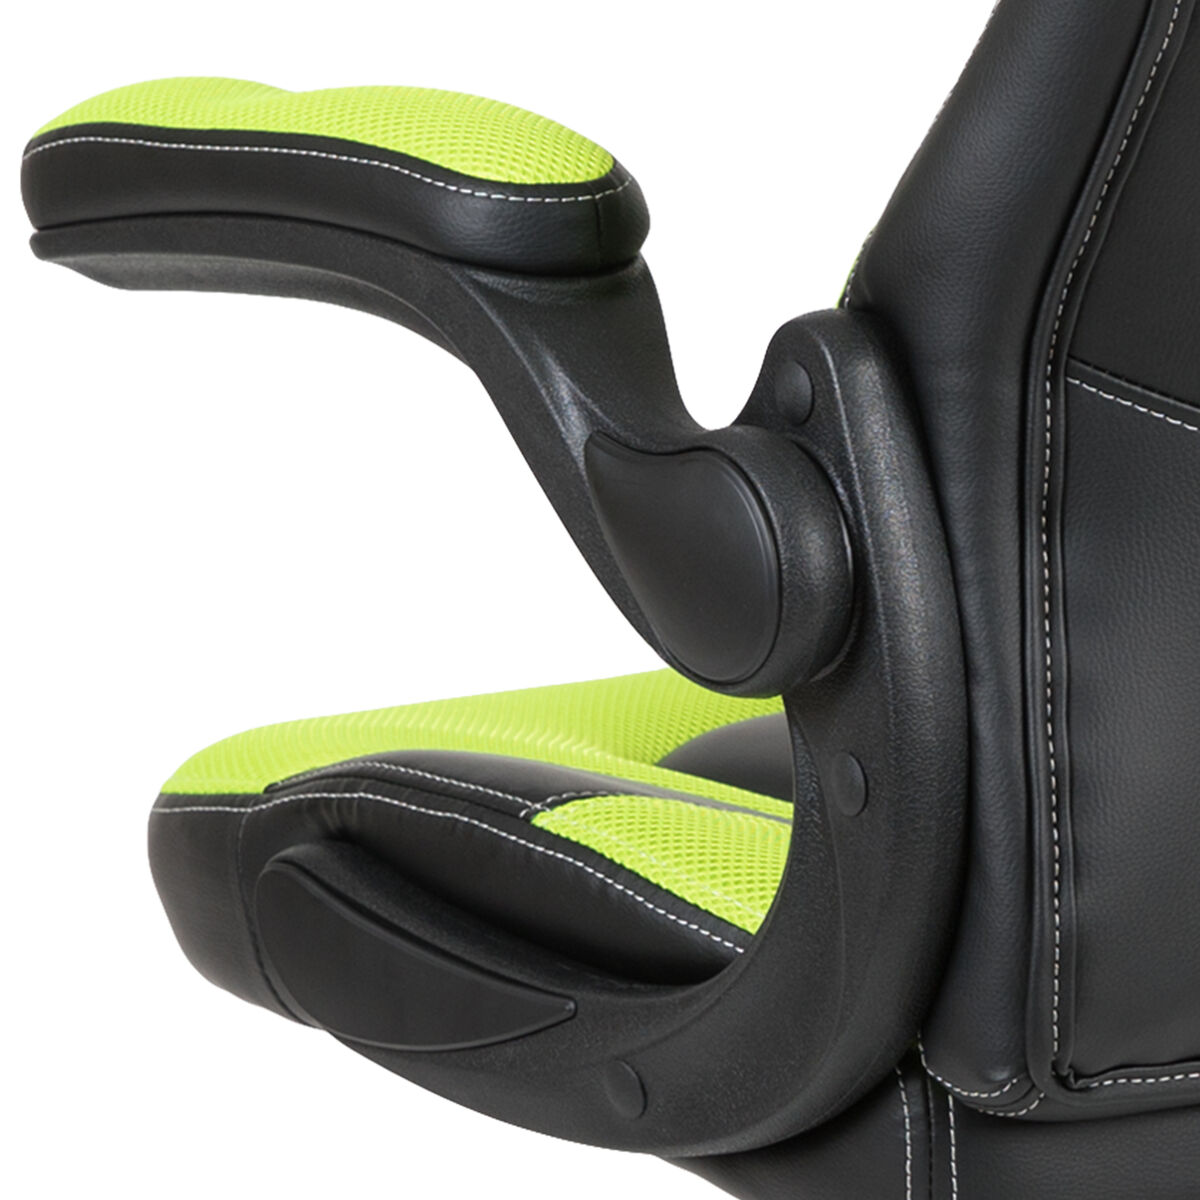 Swell X10 Gaming Chair Racing Office Ergonomic Computer Pc Adjustable Swivel Chair With Flip Up Arms Neon Green Black Leathersoft Ocoug Best Dining Table And Chair Ideas Images Ocougorg